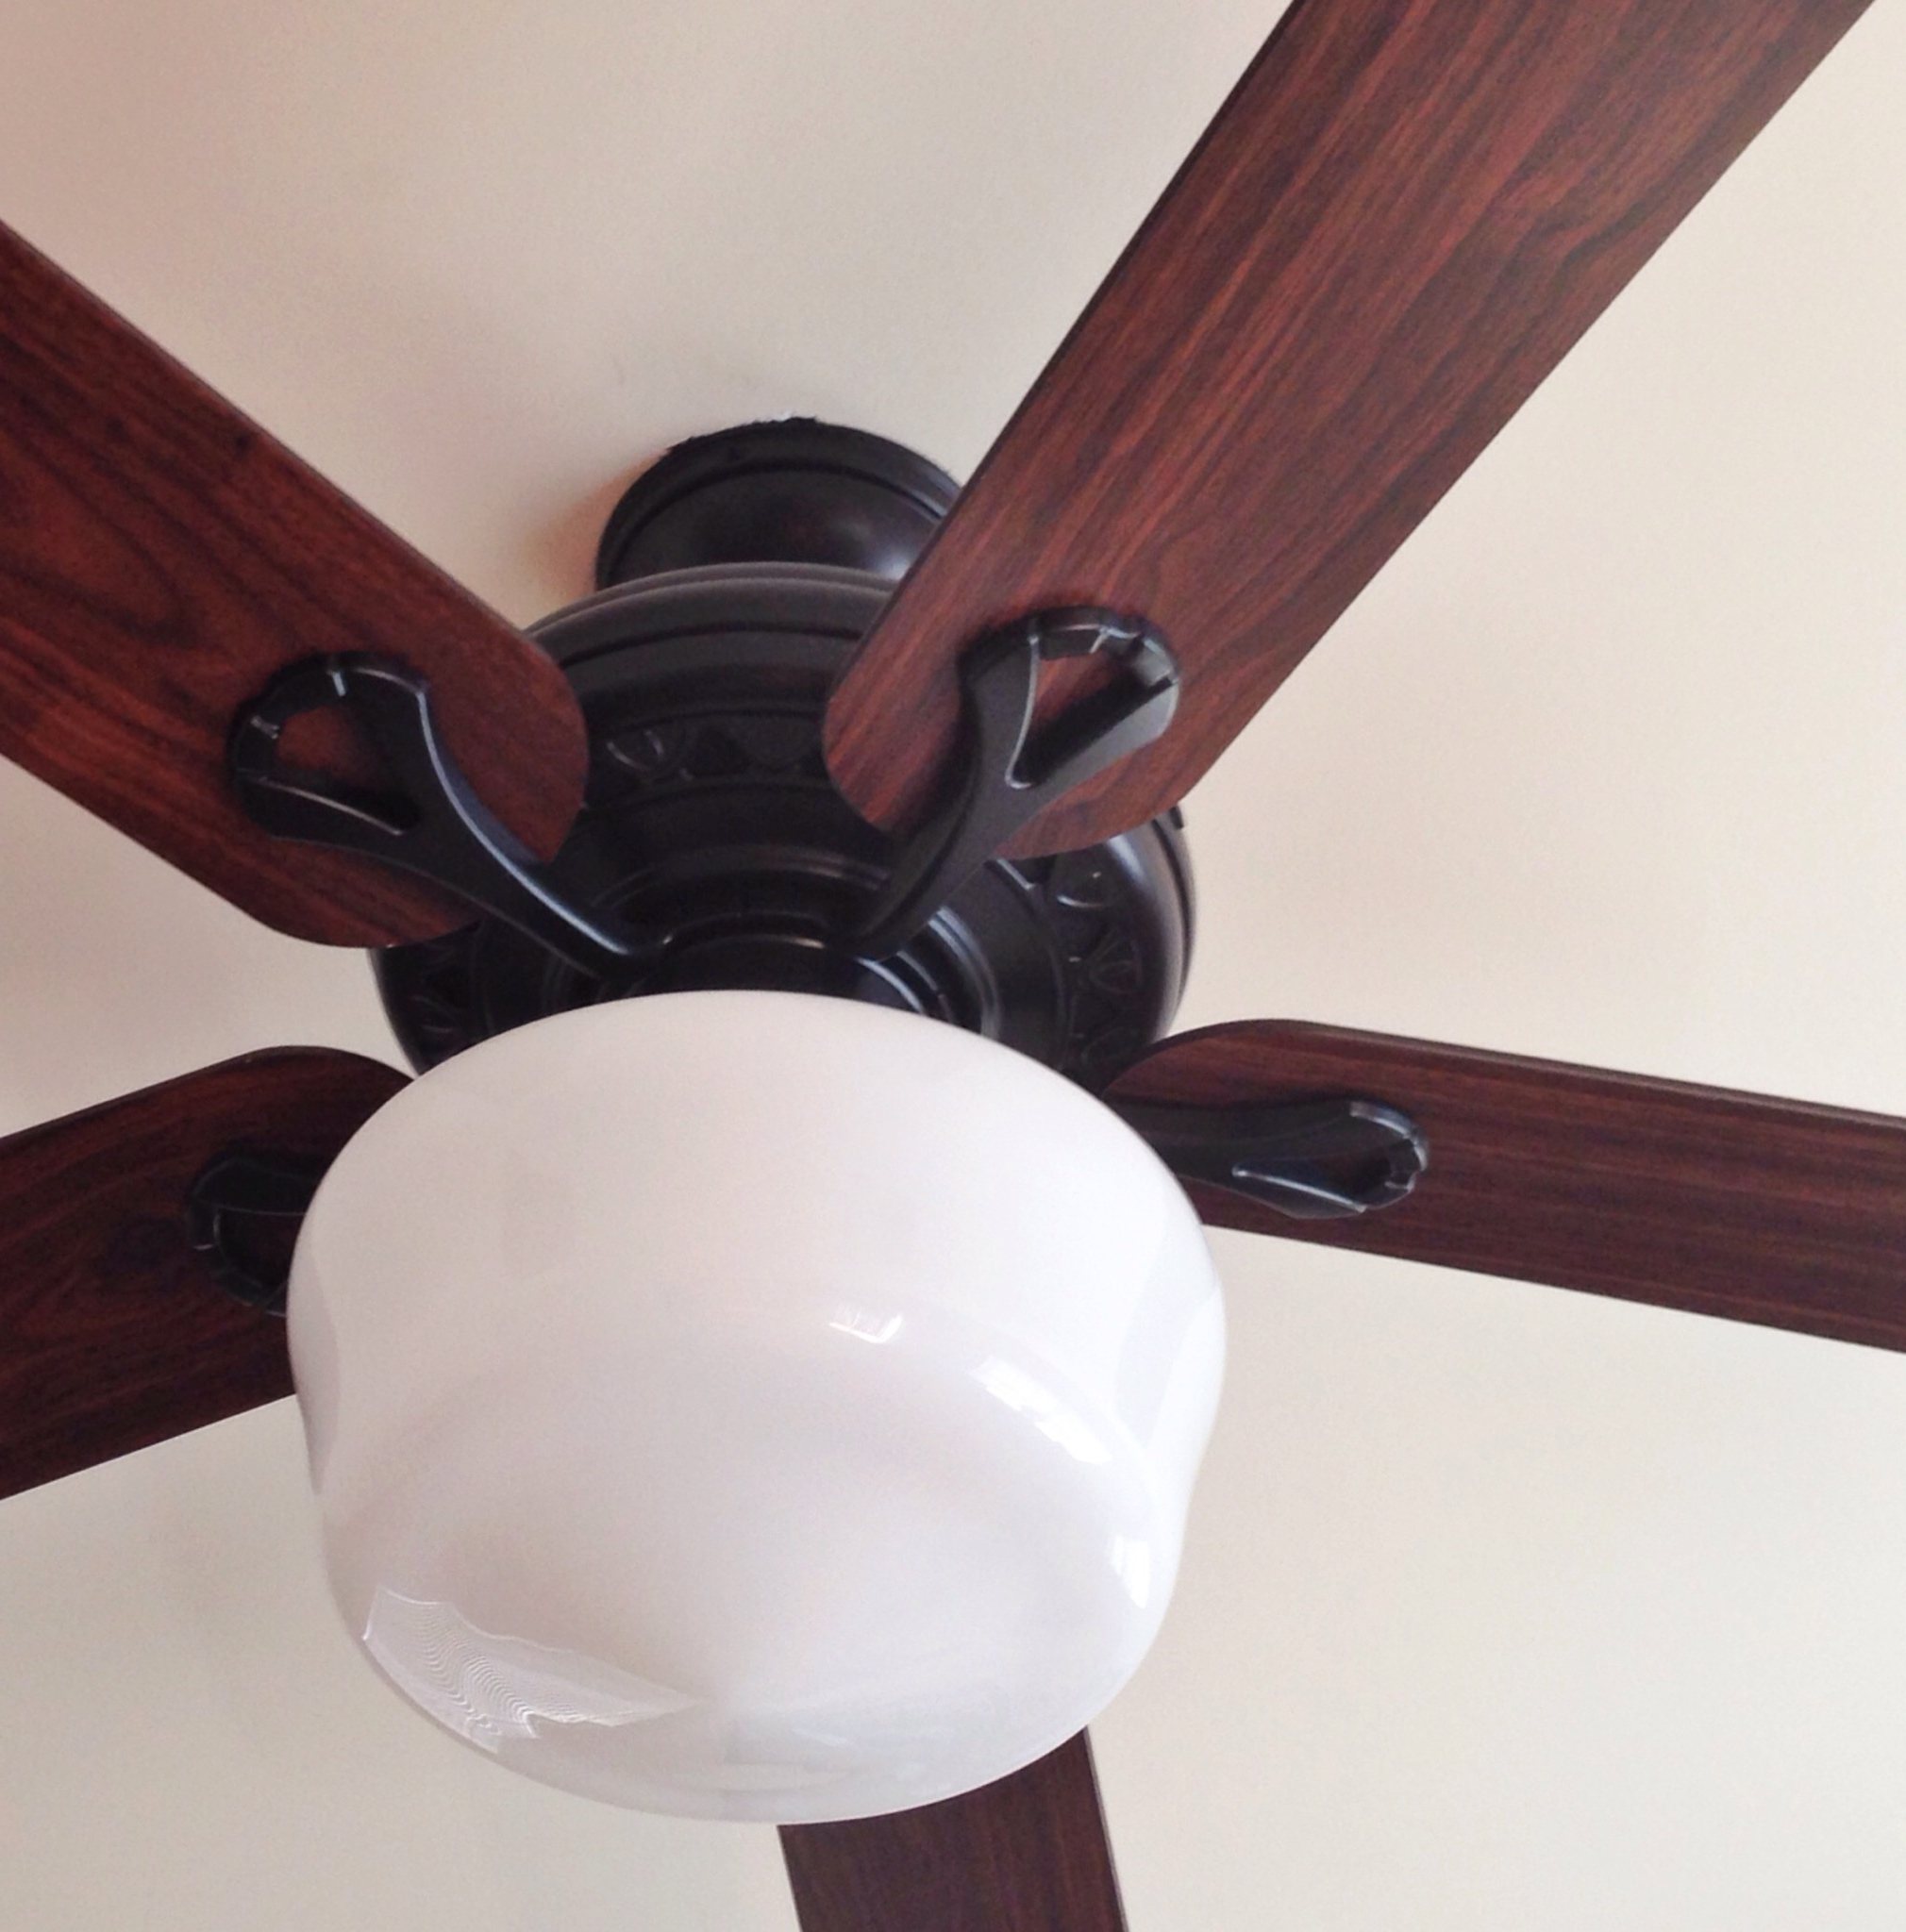 Ceiling Fan With Schoolhouse Light Luxury Home Depot Ceiling Fans Regarding Well Liked Outdoor Ceiling Fans With Schoolhouse Light (Gallery 20 of 20)